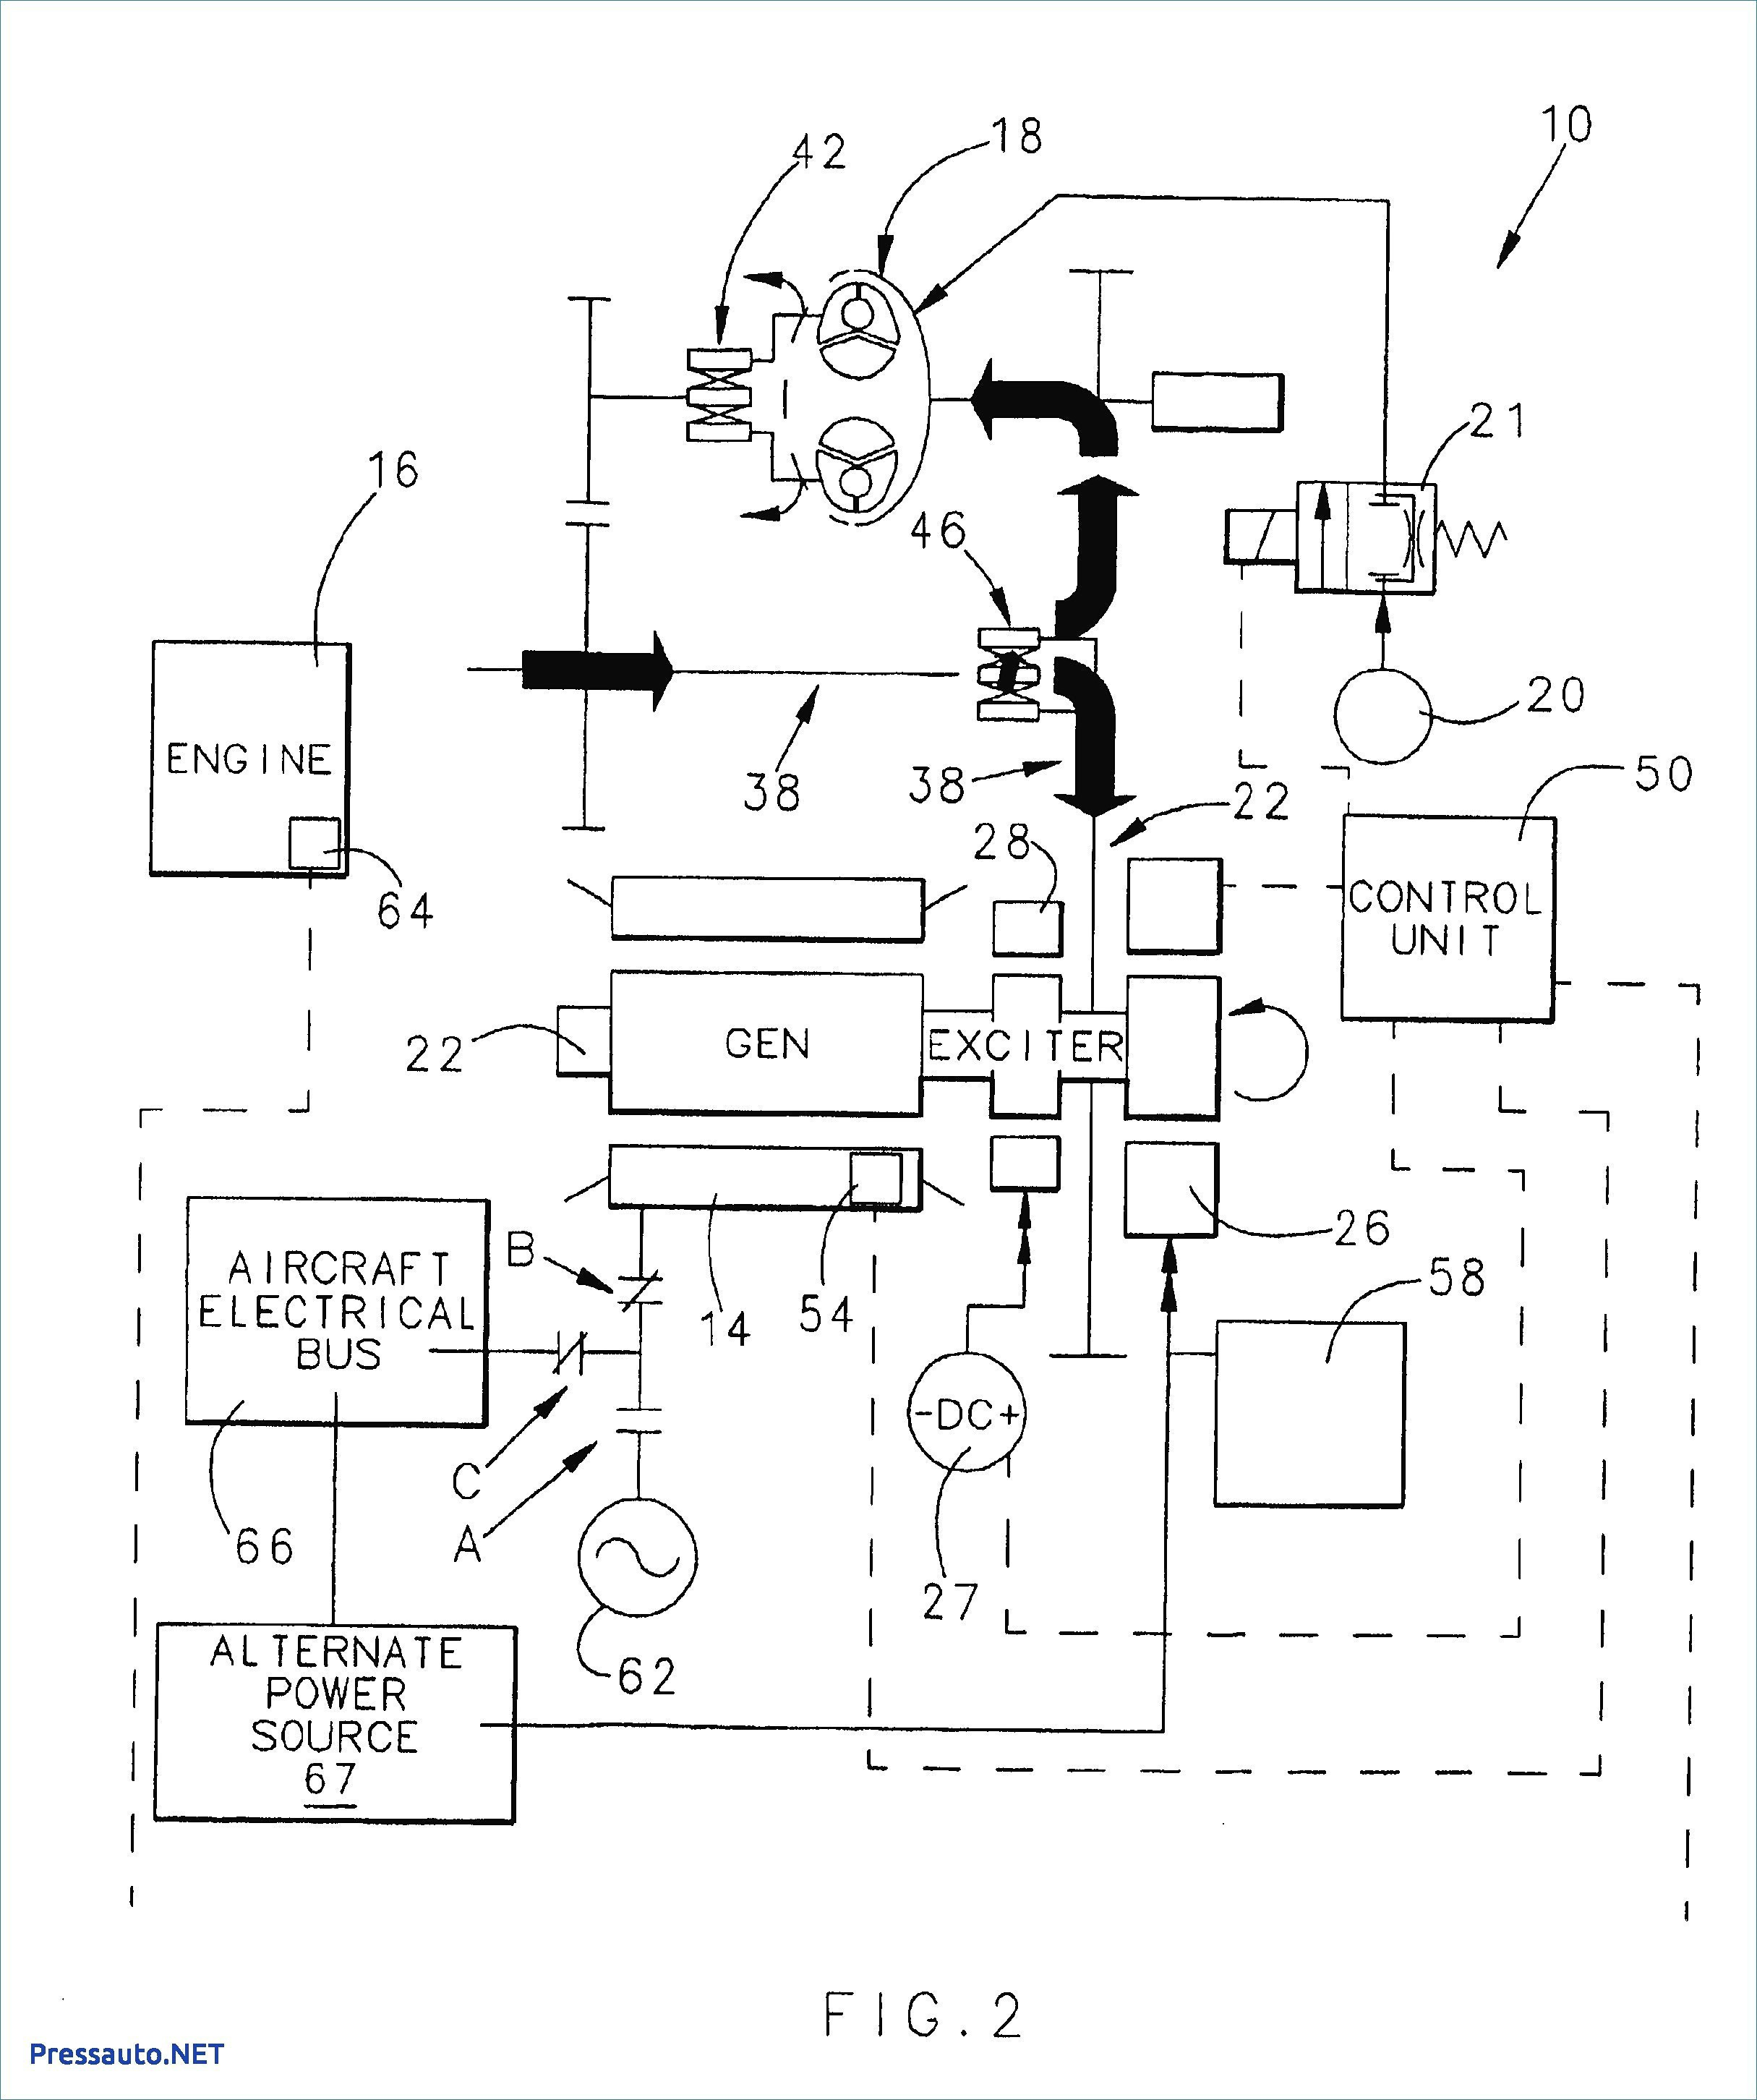 diamante engine diagram trusted wiring diagrams u2022 rh badgesandbuttons com